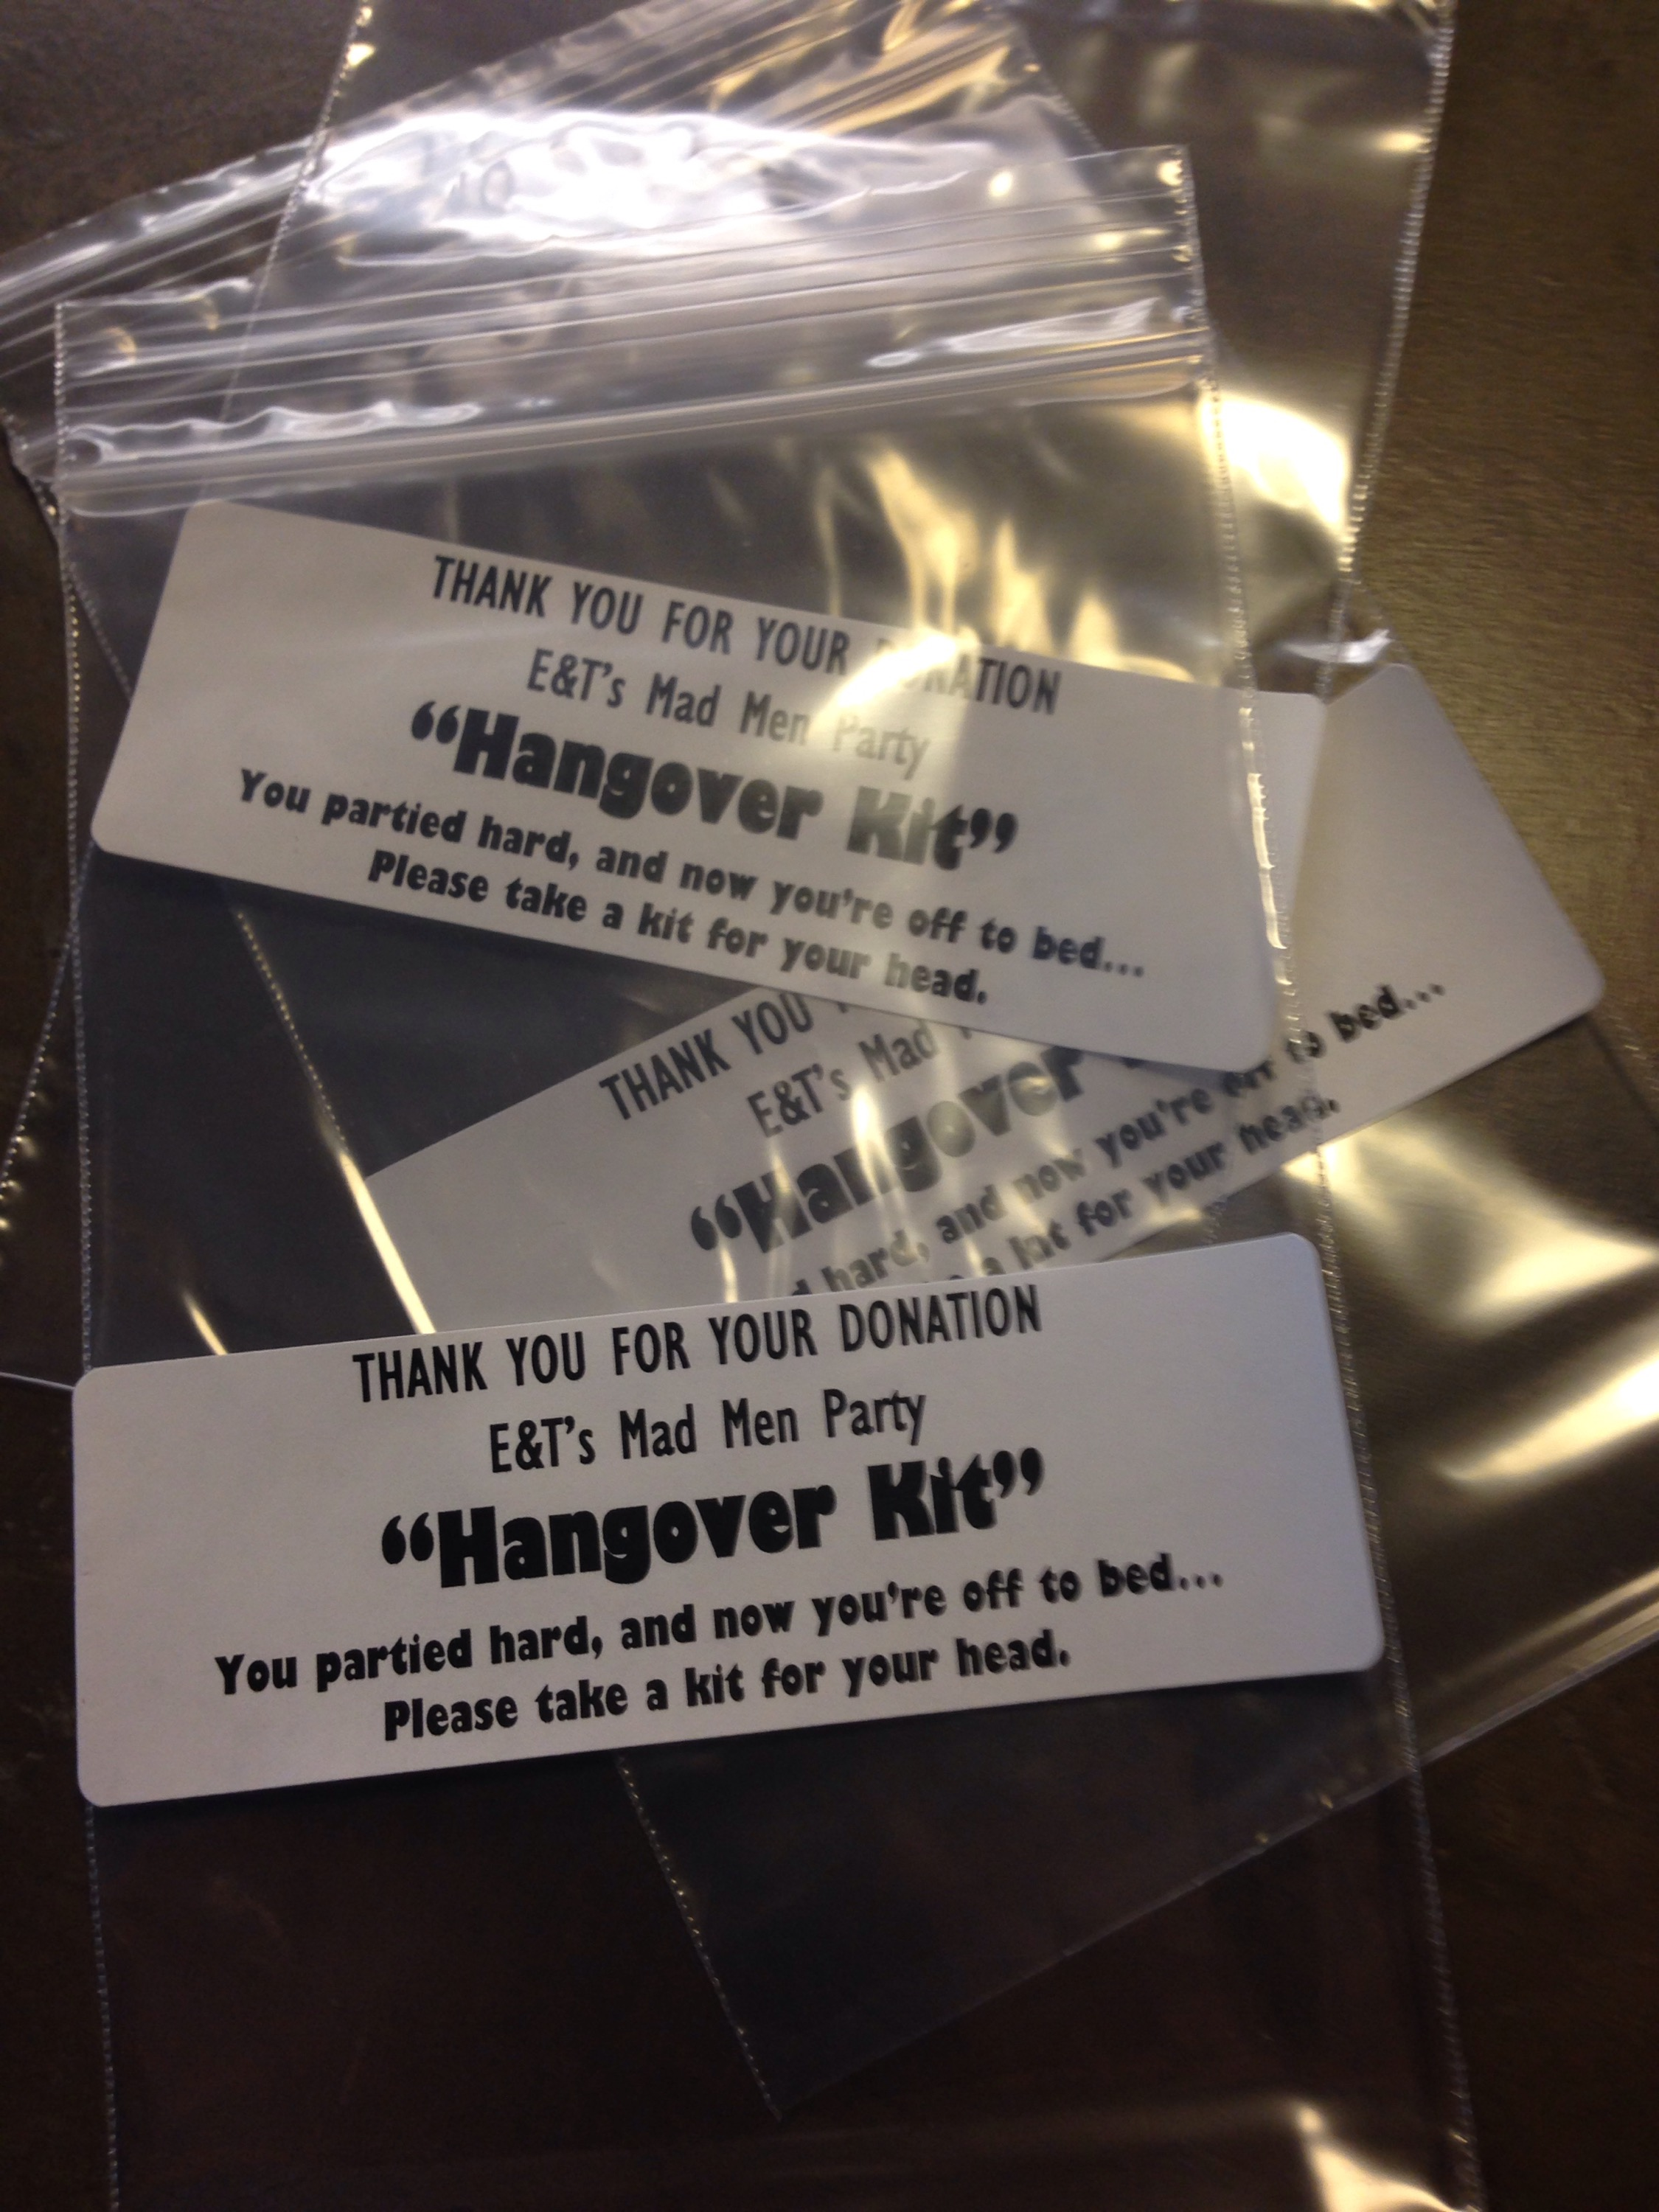 This is a photo of Bright Hen Party Hangover Kit Labels